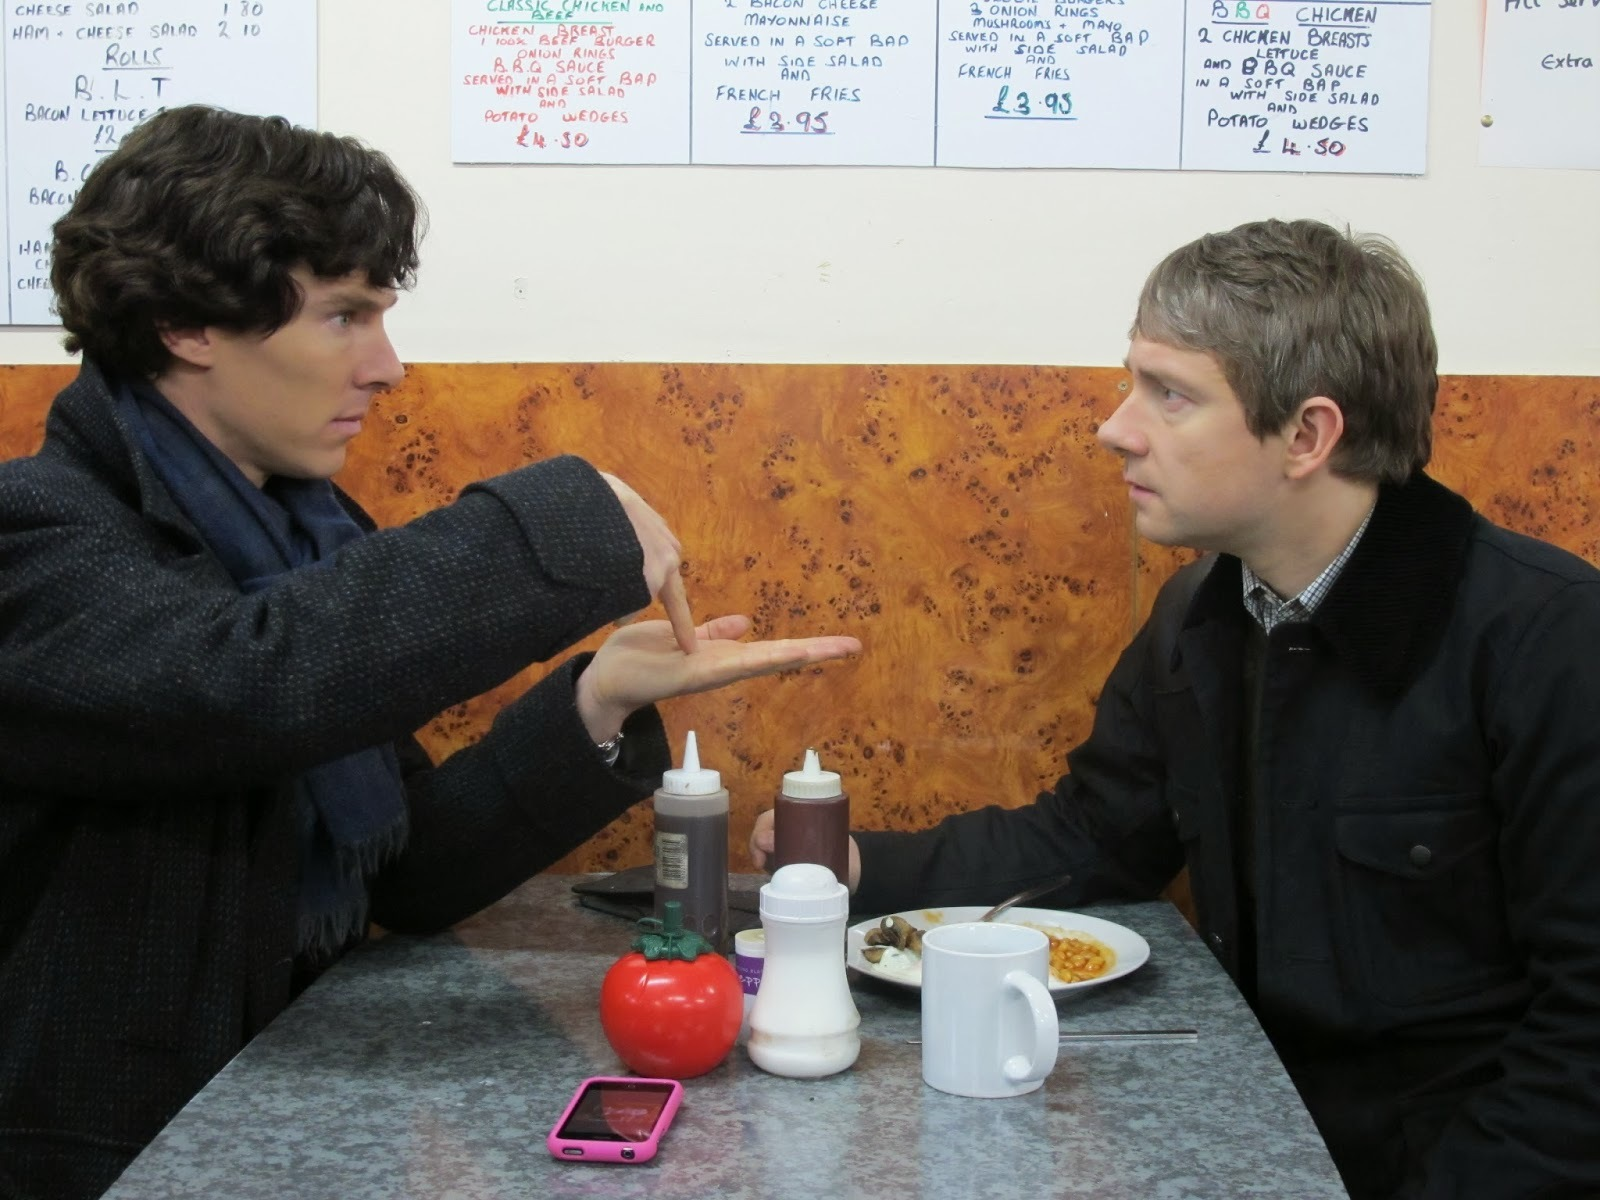 Benedict Cumberbatch and Martin Freeman as Sherlock Holmes and John Watson in BBC Sherlock Season 1 Episode 3 The Great Game